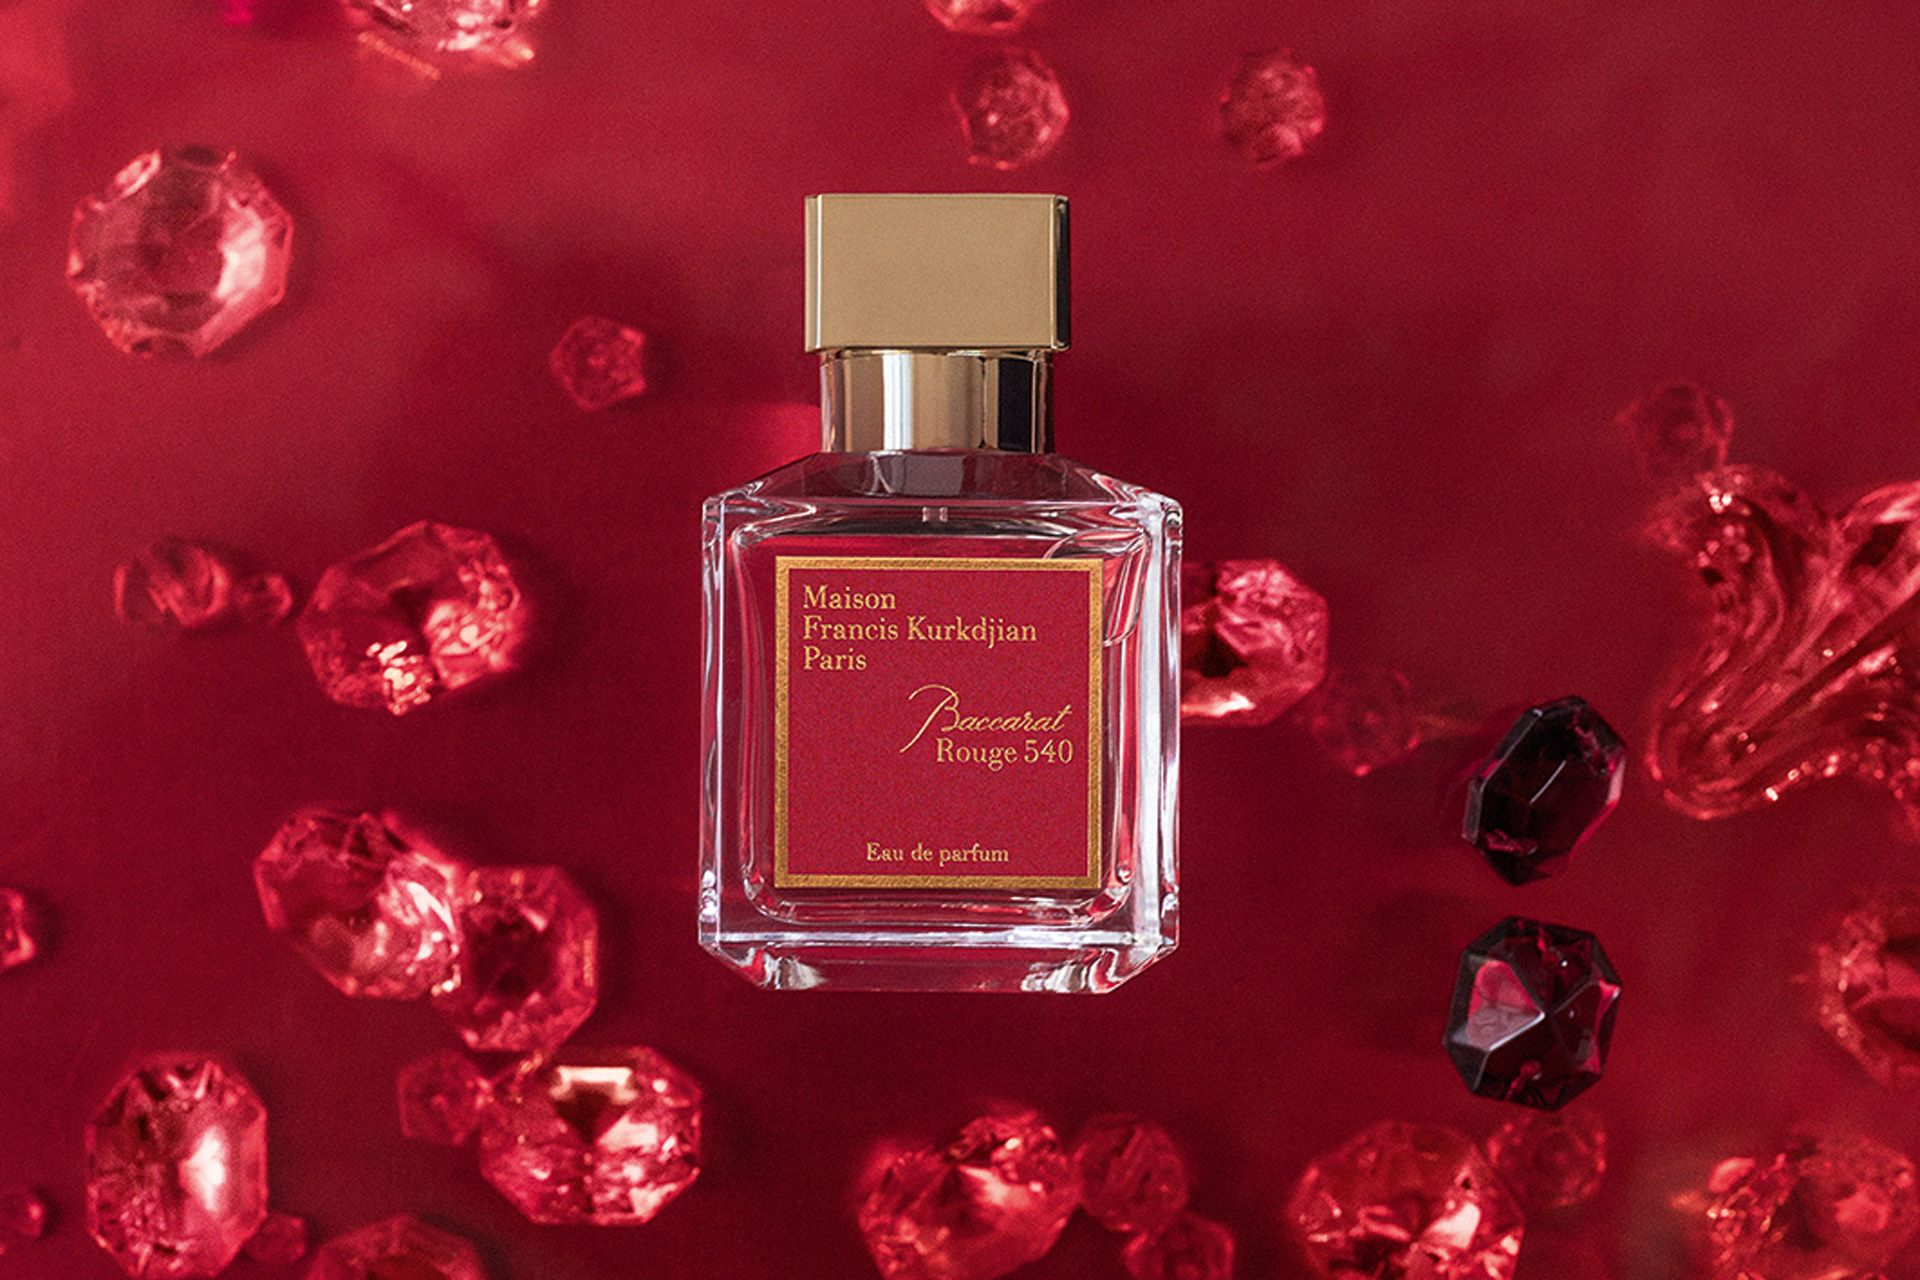 6abfcf1ca67a9 Baccarat Rouge 540 is a new addition to the Maison Francis Kurkdjian  perfume range